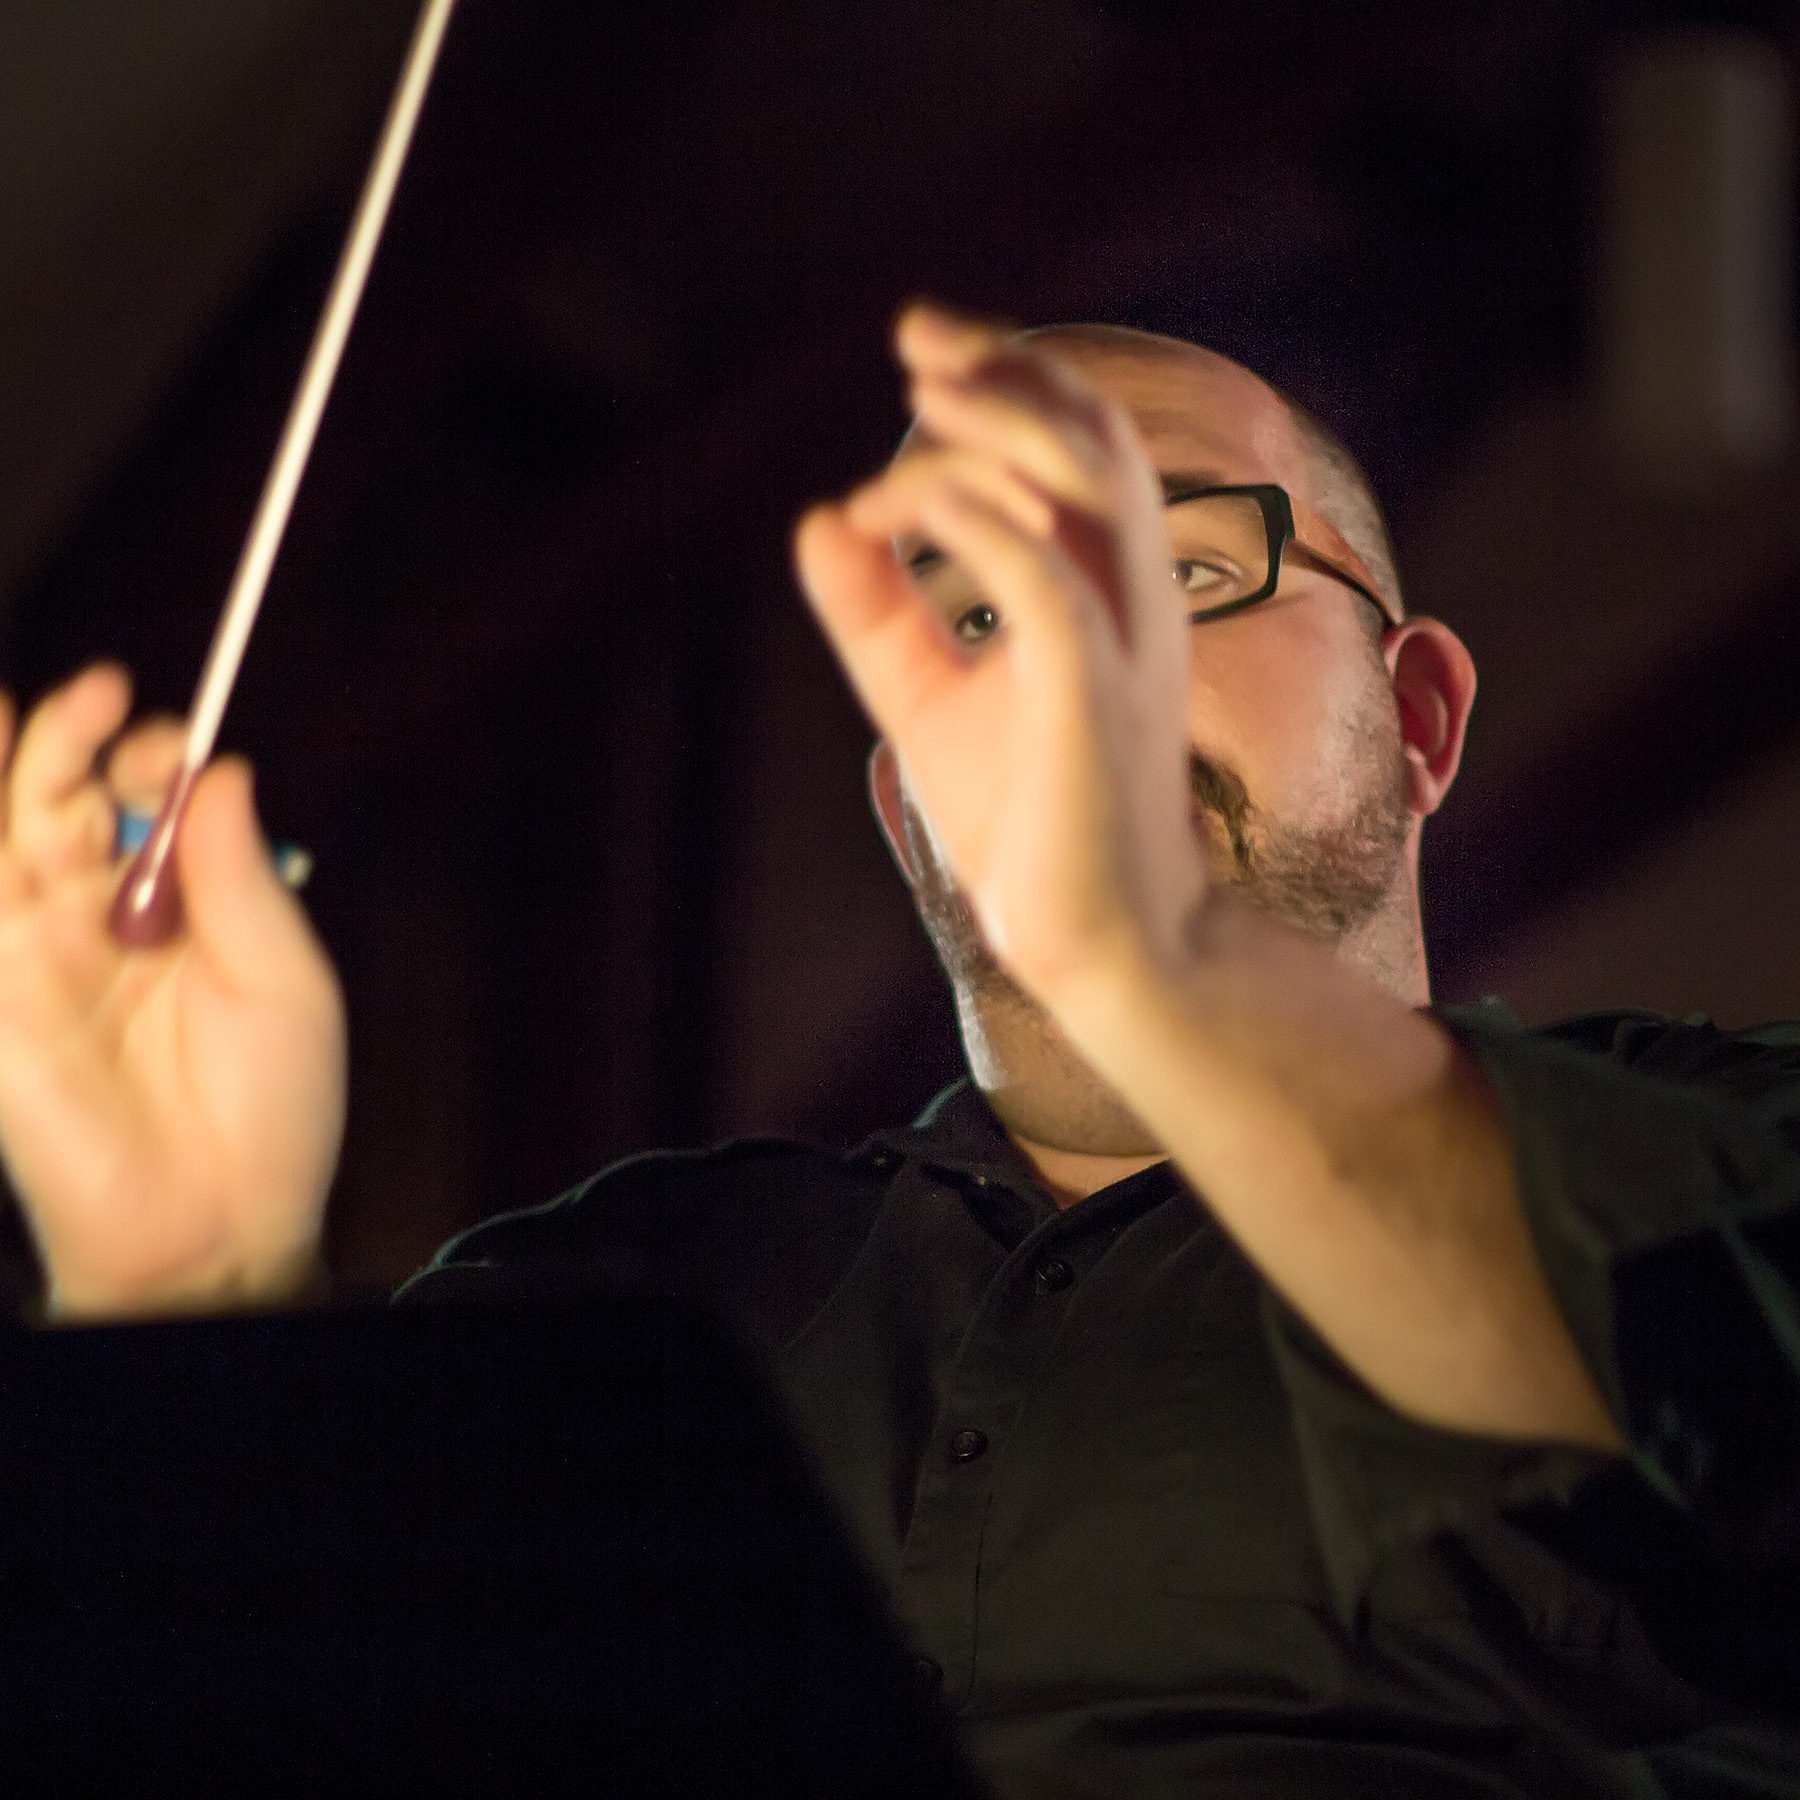 A white man with a beard and glasses wearing a black shirt is conducting in a shadowy theatre. He has his hands raised, with a baton in one hand and the fingers of the other hand cupped in such a way that the viewer can glimpse one of his eyes through his fingers.